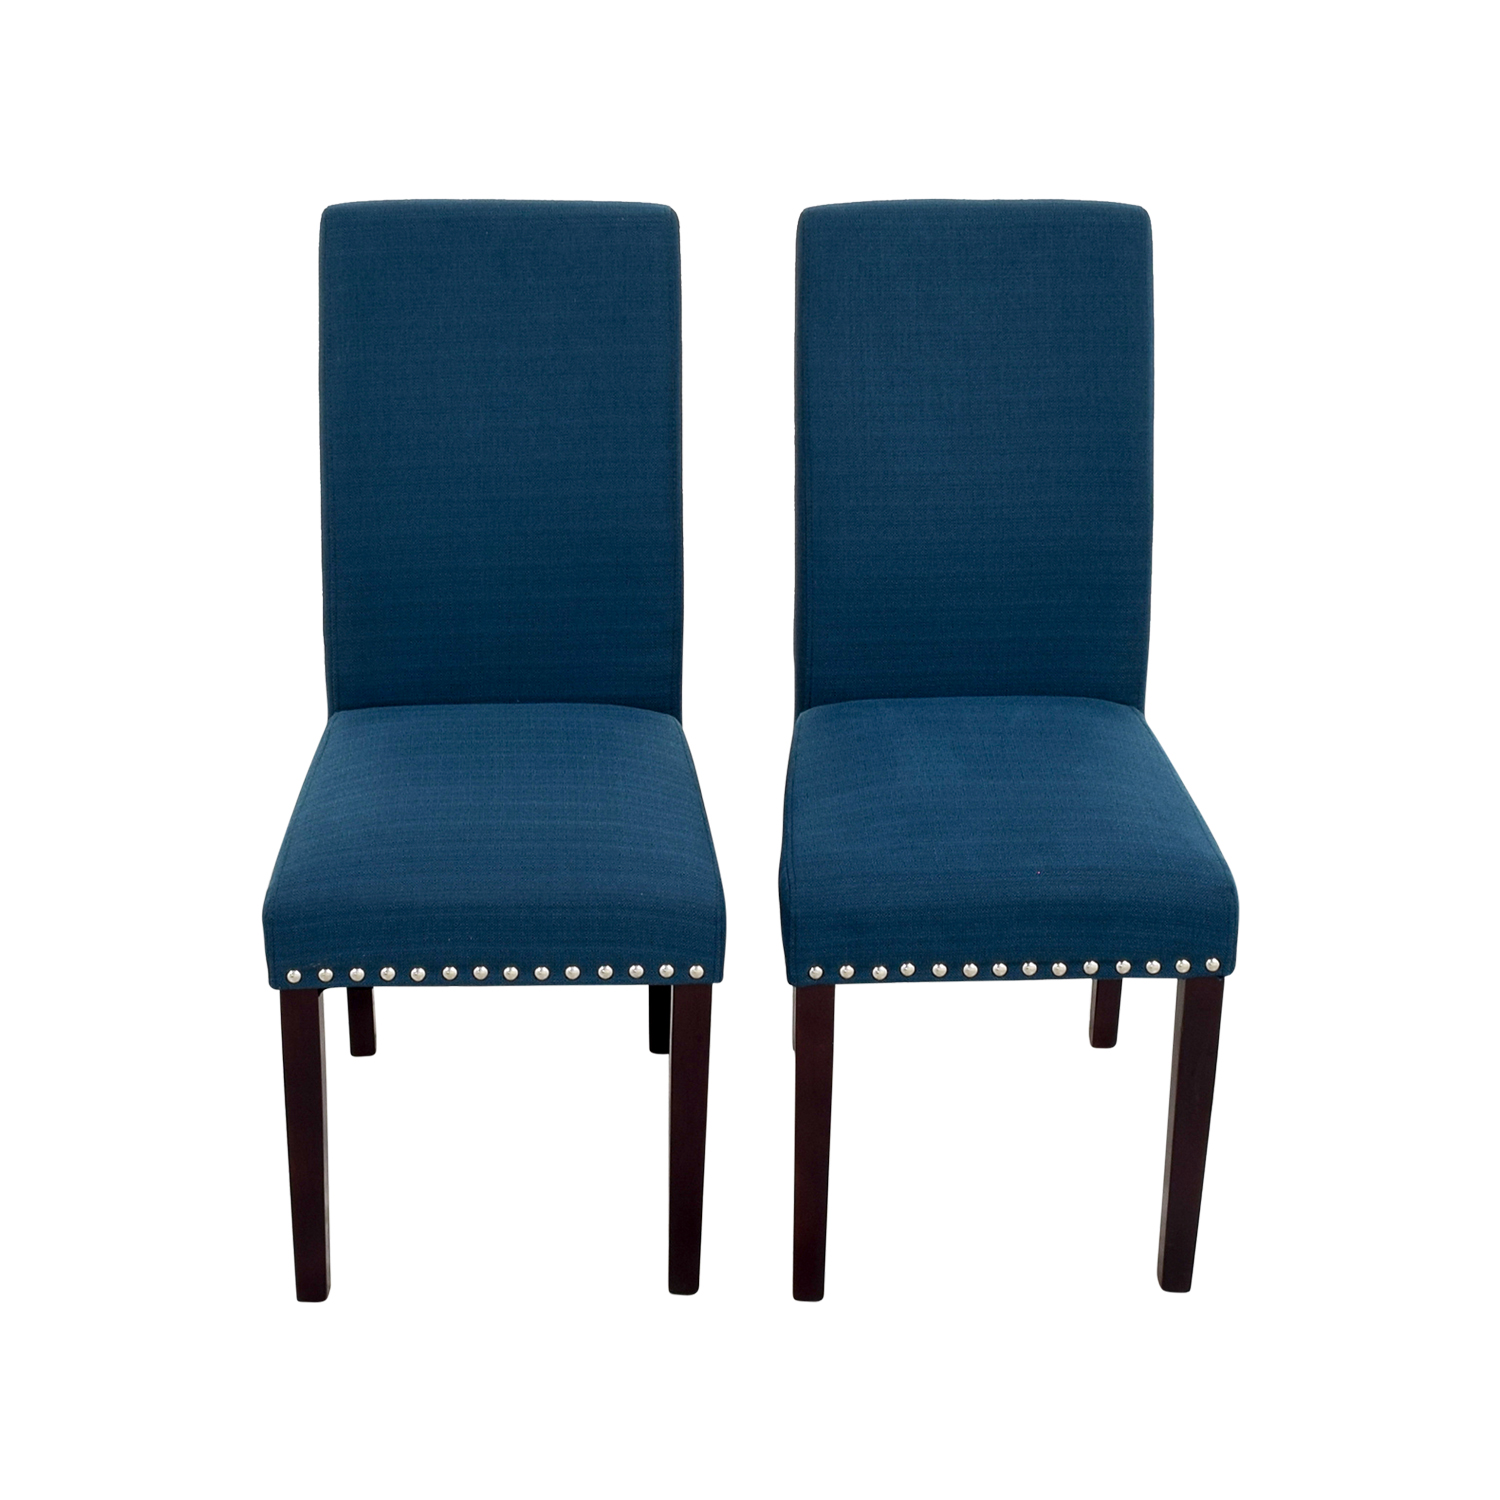 70% OFF Modway Modway Madrid Nail Head Teal Dining Chairs Chairs